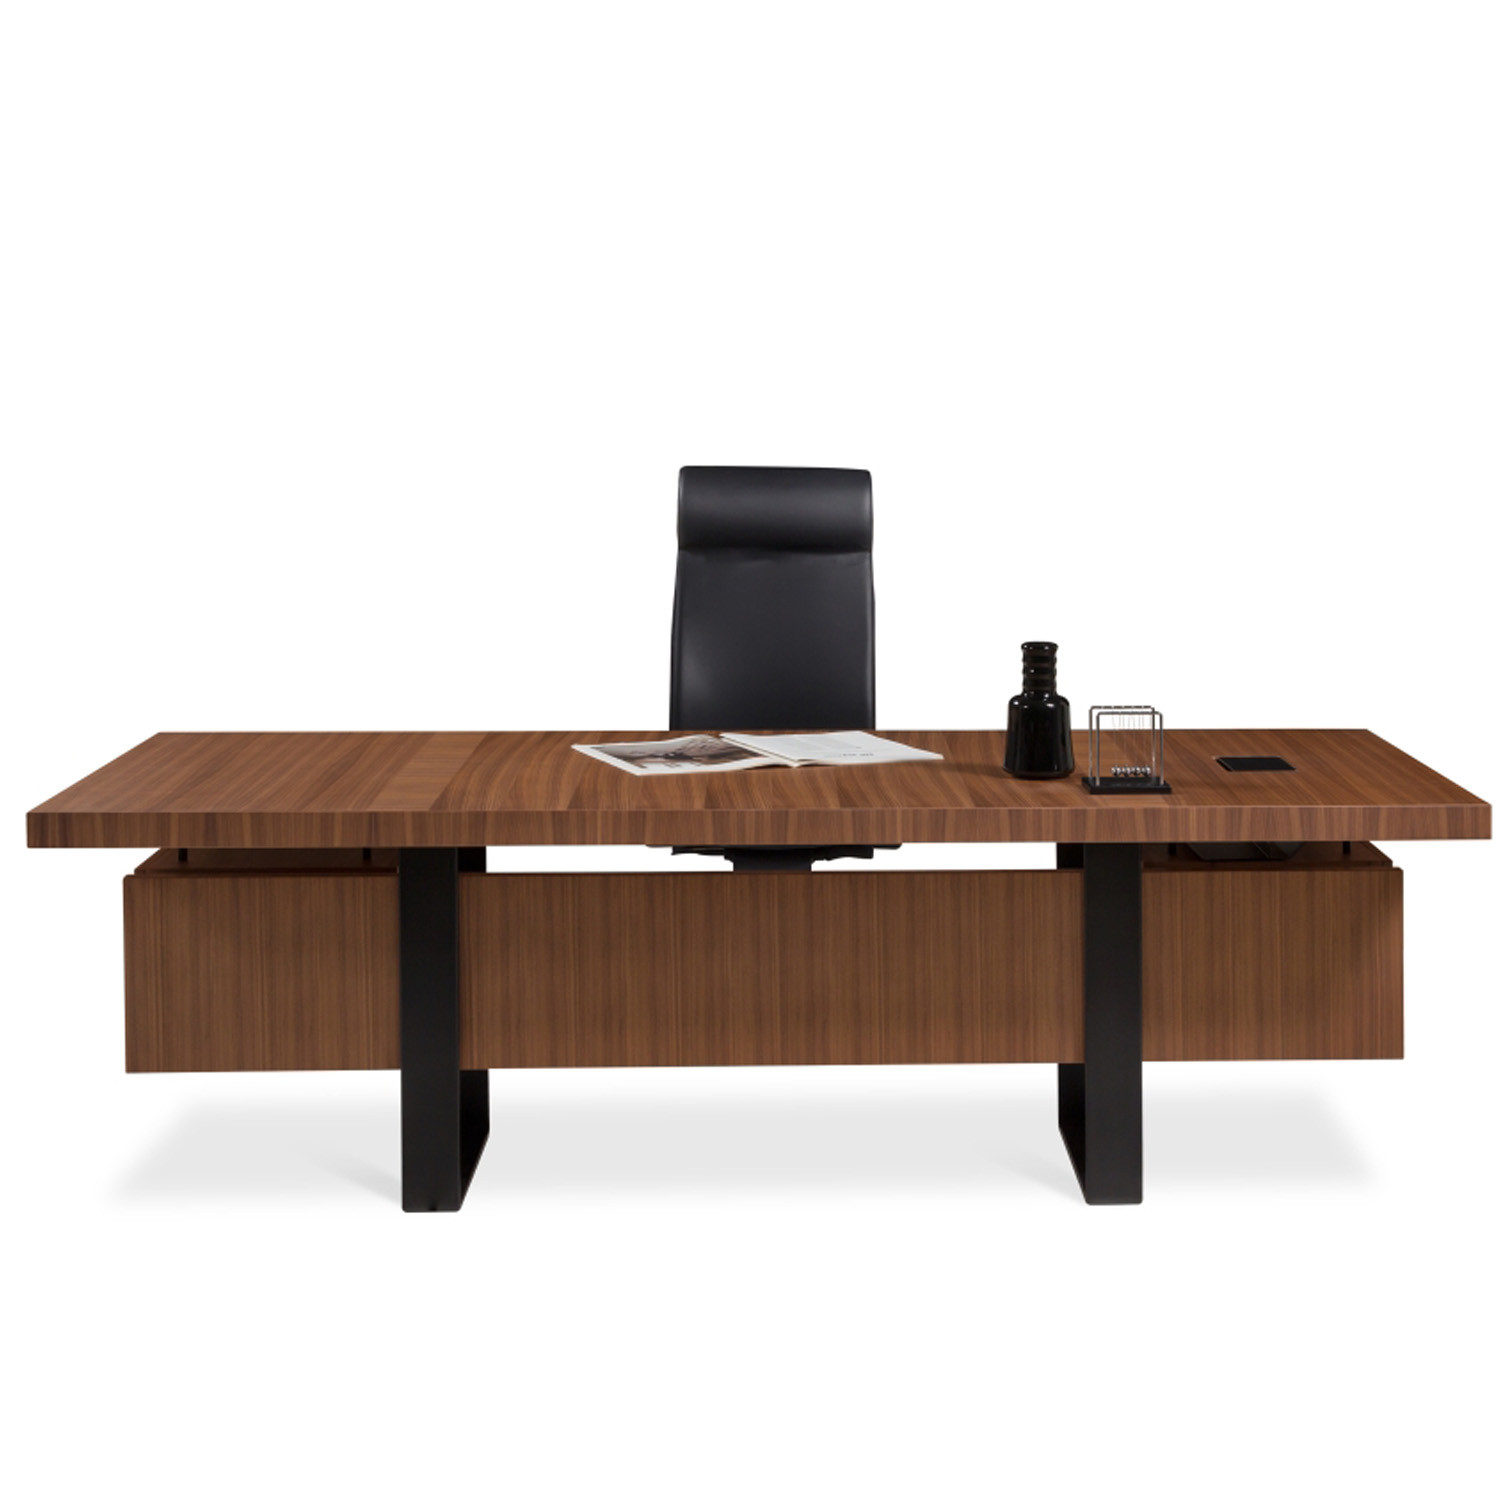 Gazel Executive Office Desk by Faruk Malhan